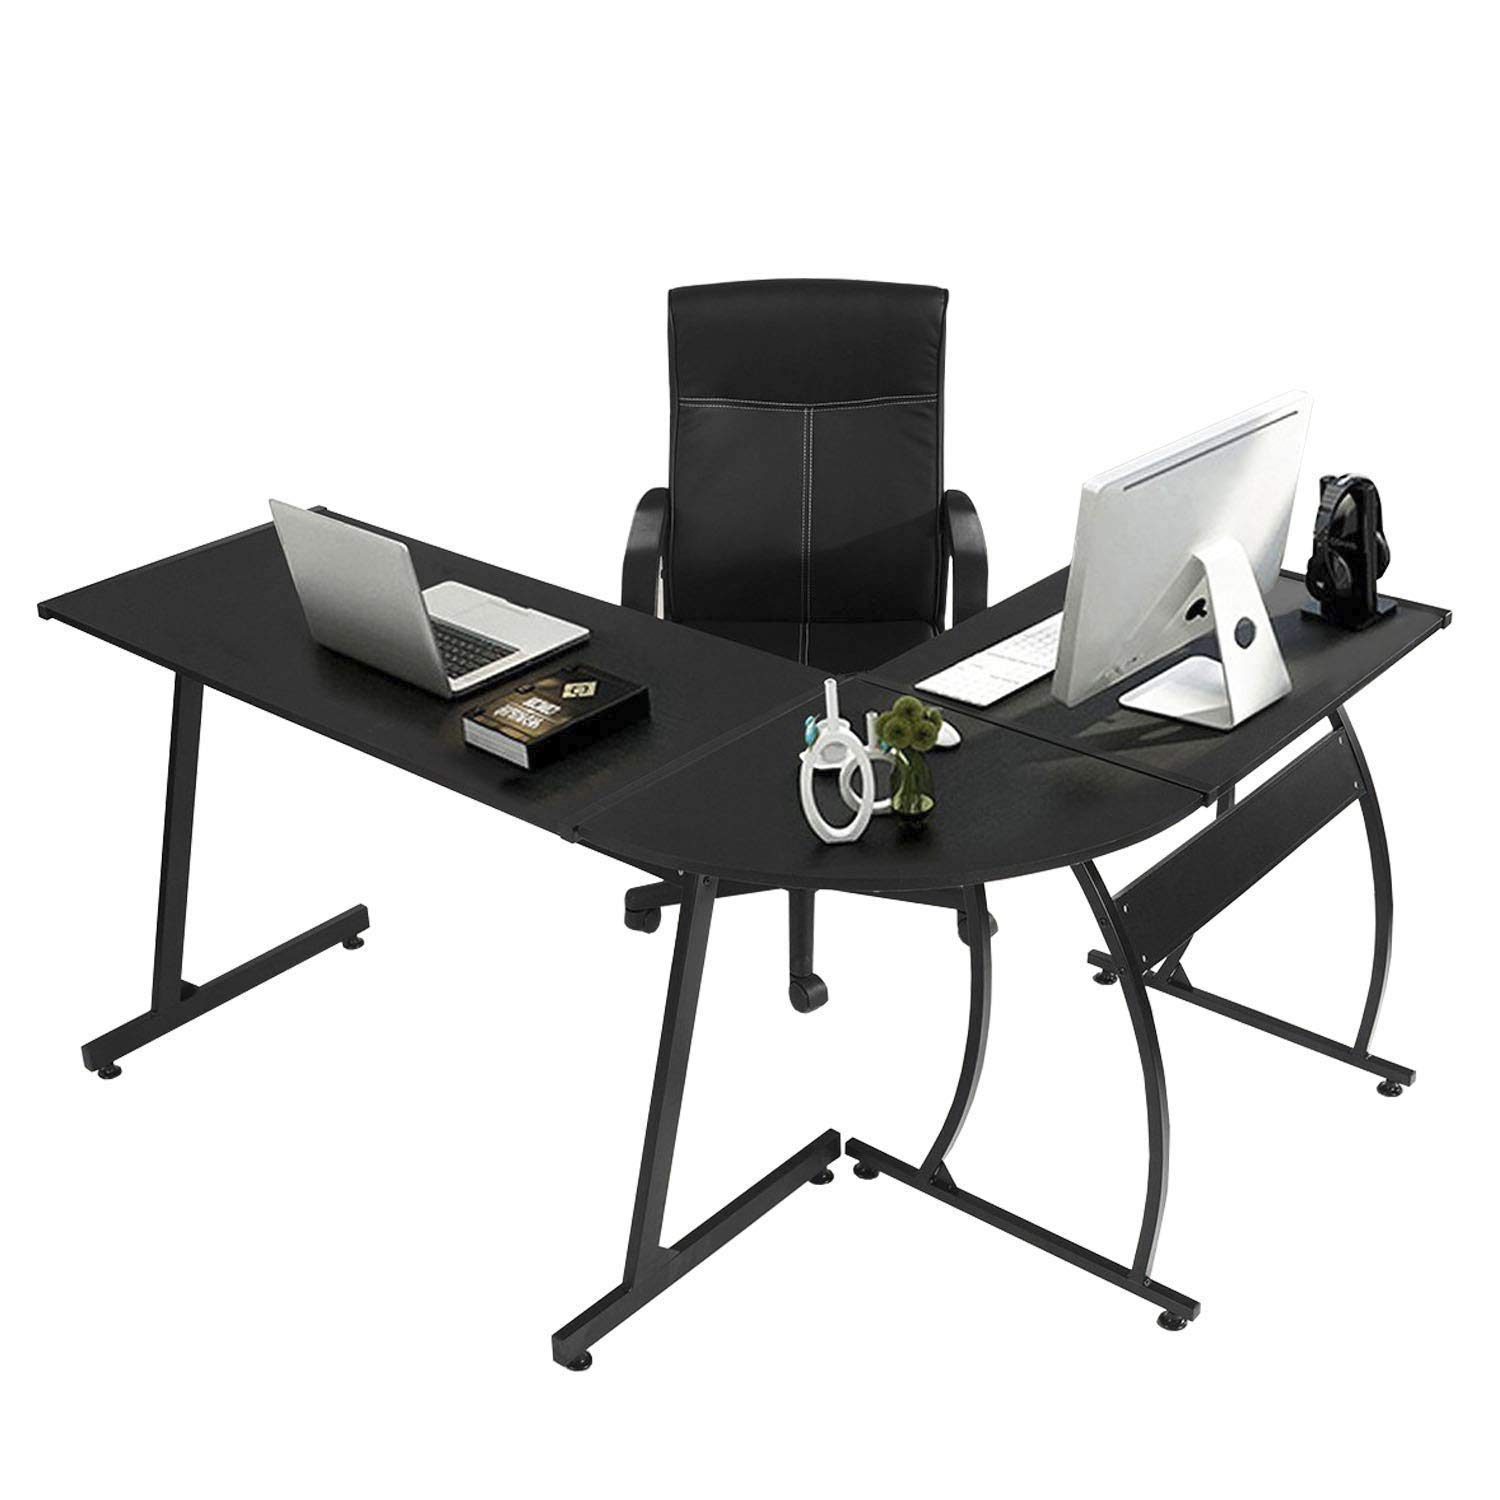 GreenForest L-Shape Corner Computer Office Desk PC Laptop Table Workstation Home Office 3-Piece,Black by GreenForest